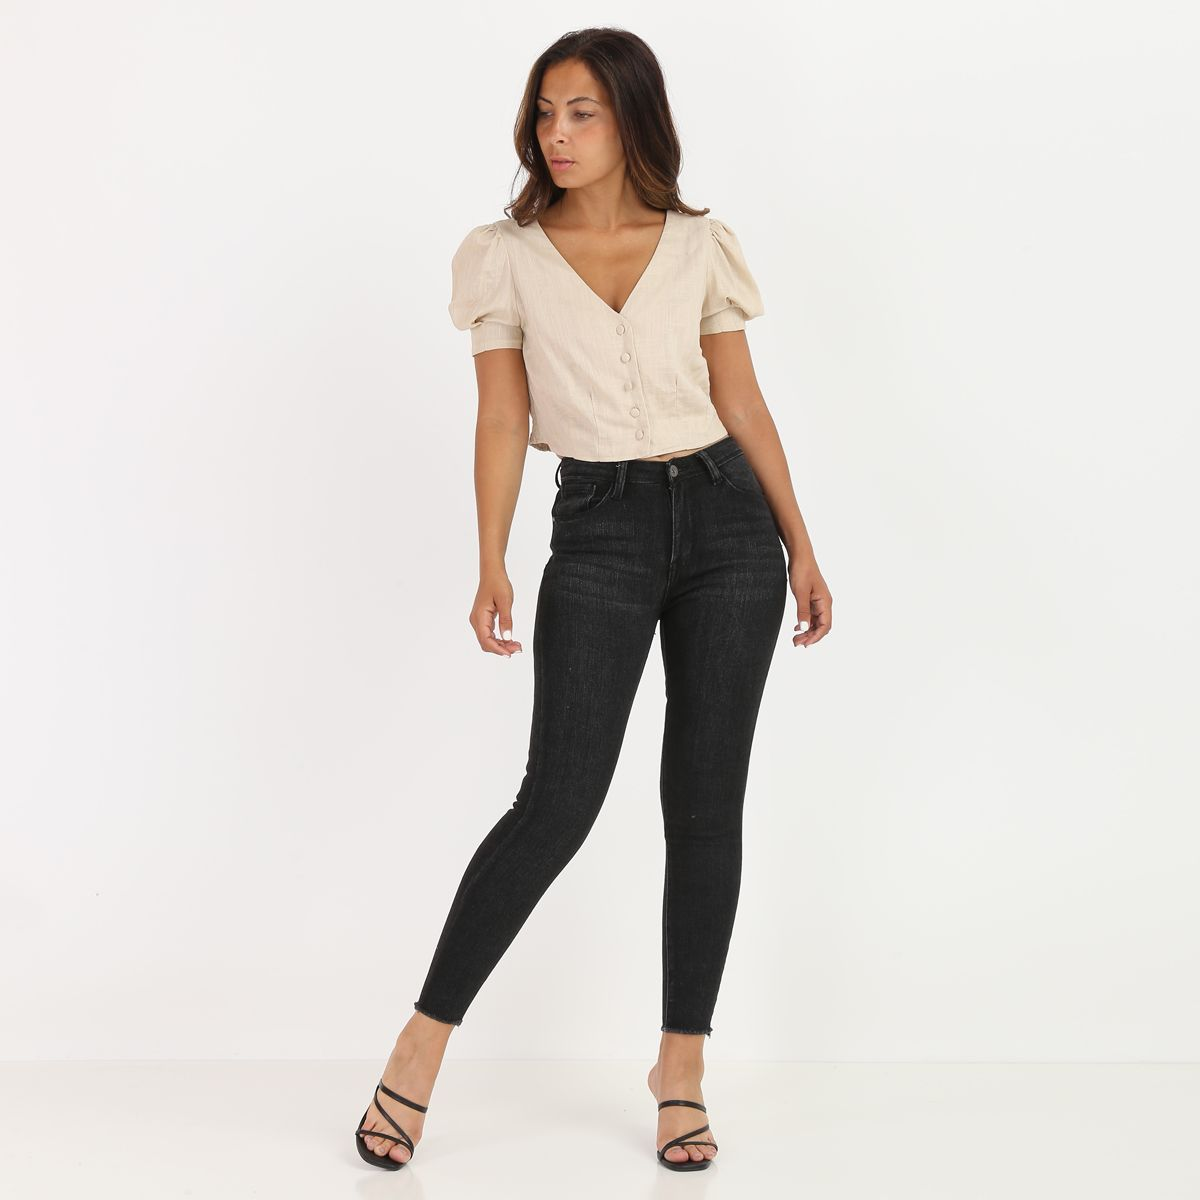 Chemisier cropped beige style lin